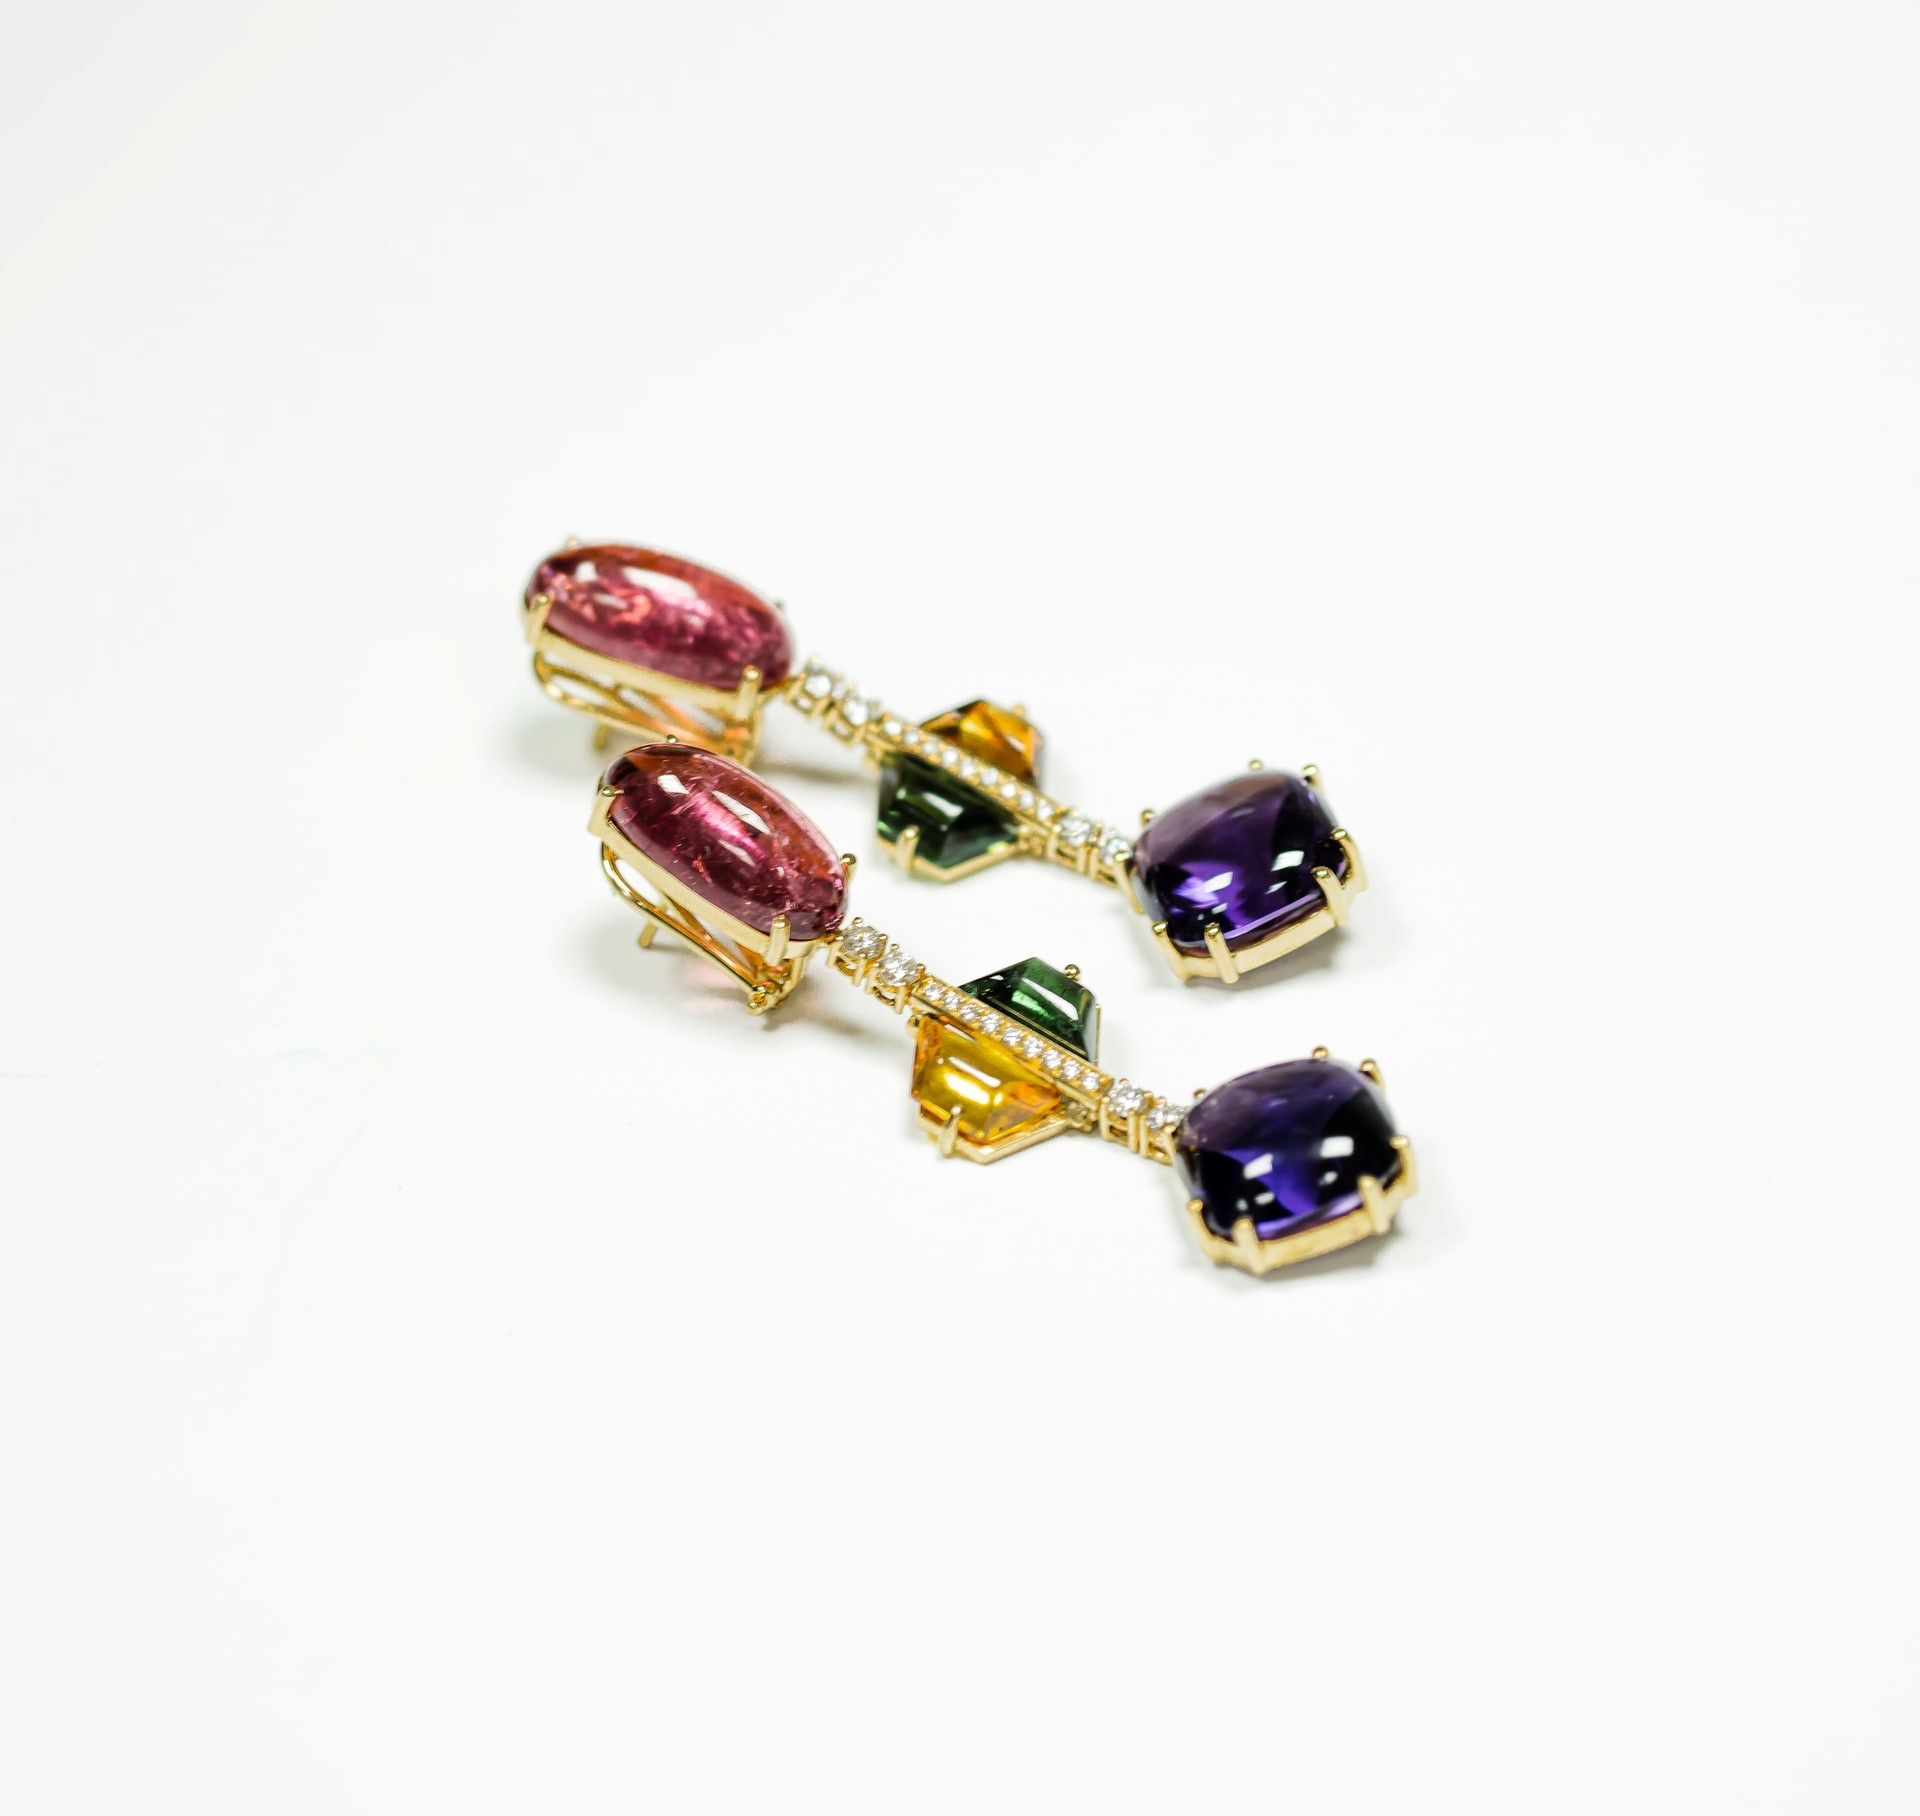 How to Care for Handmade Jewellery?